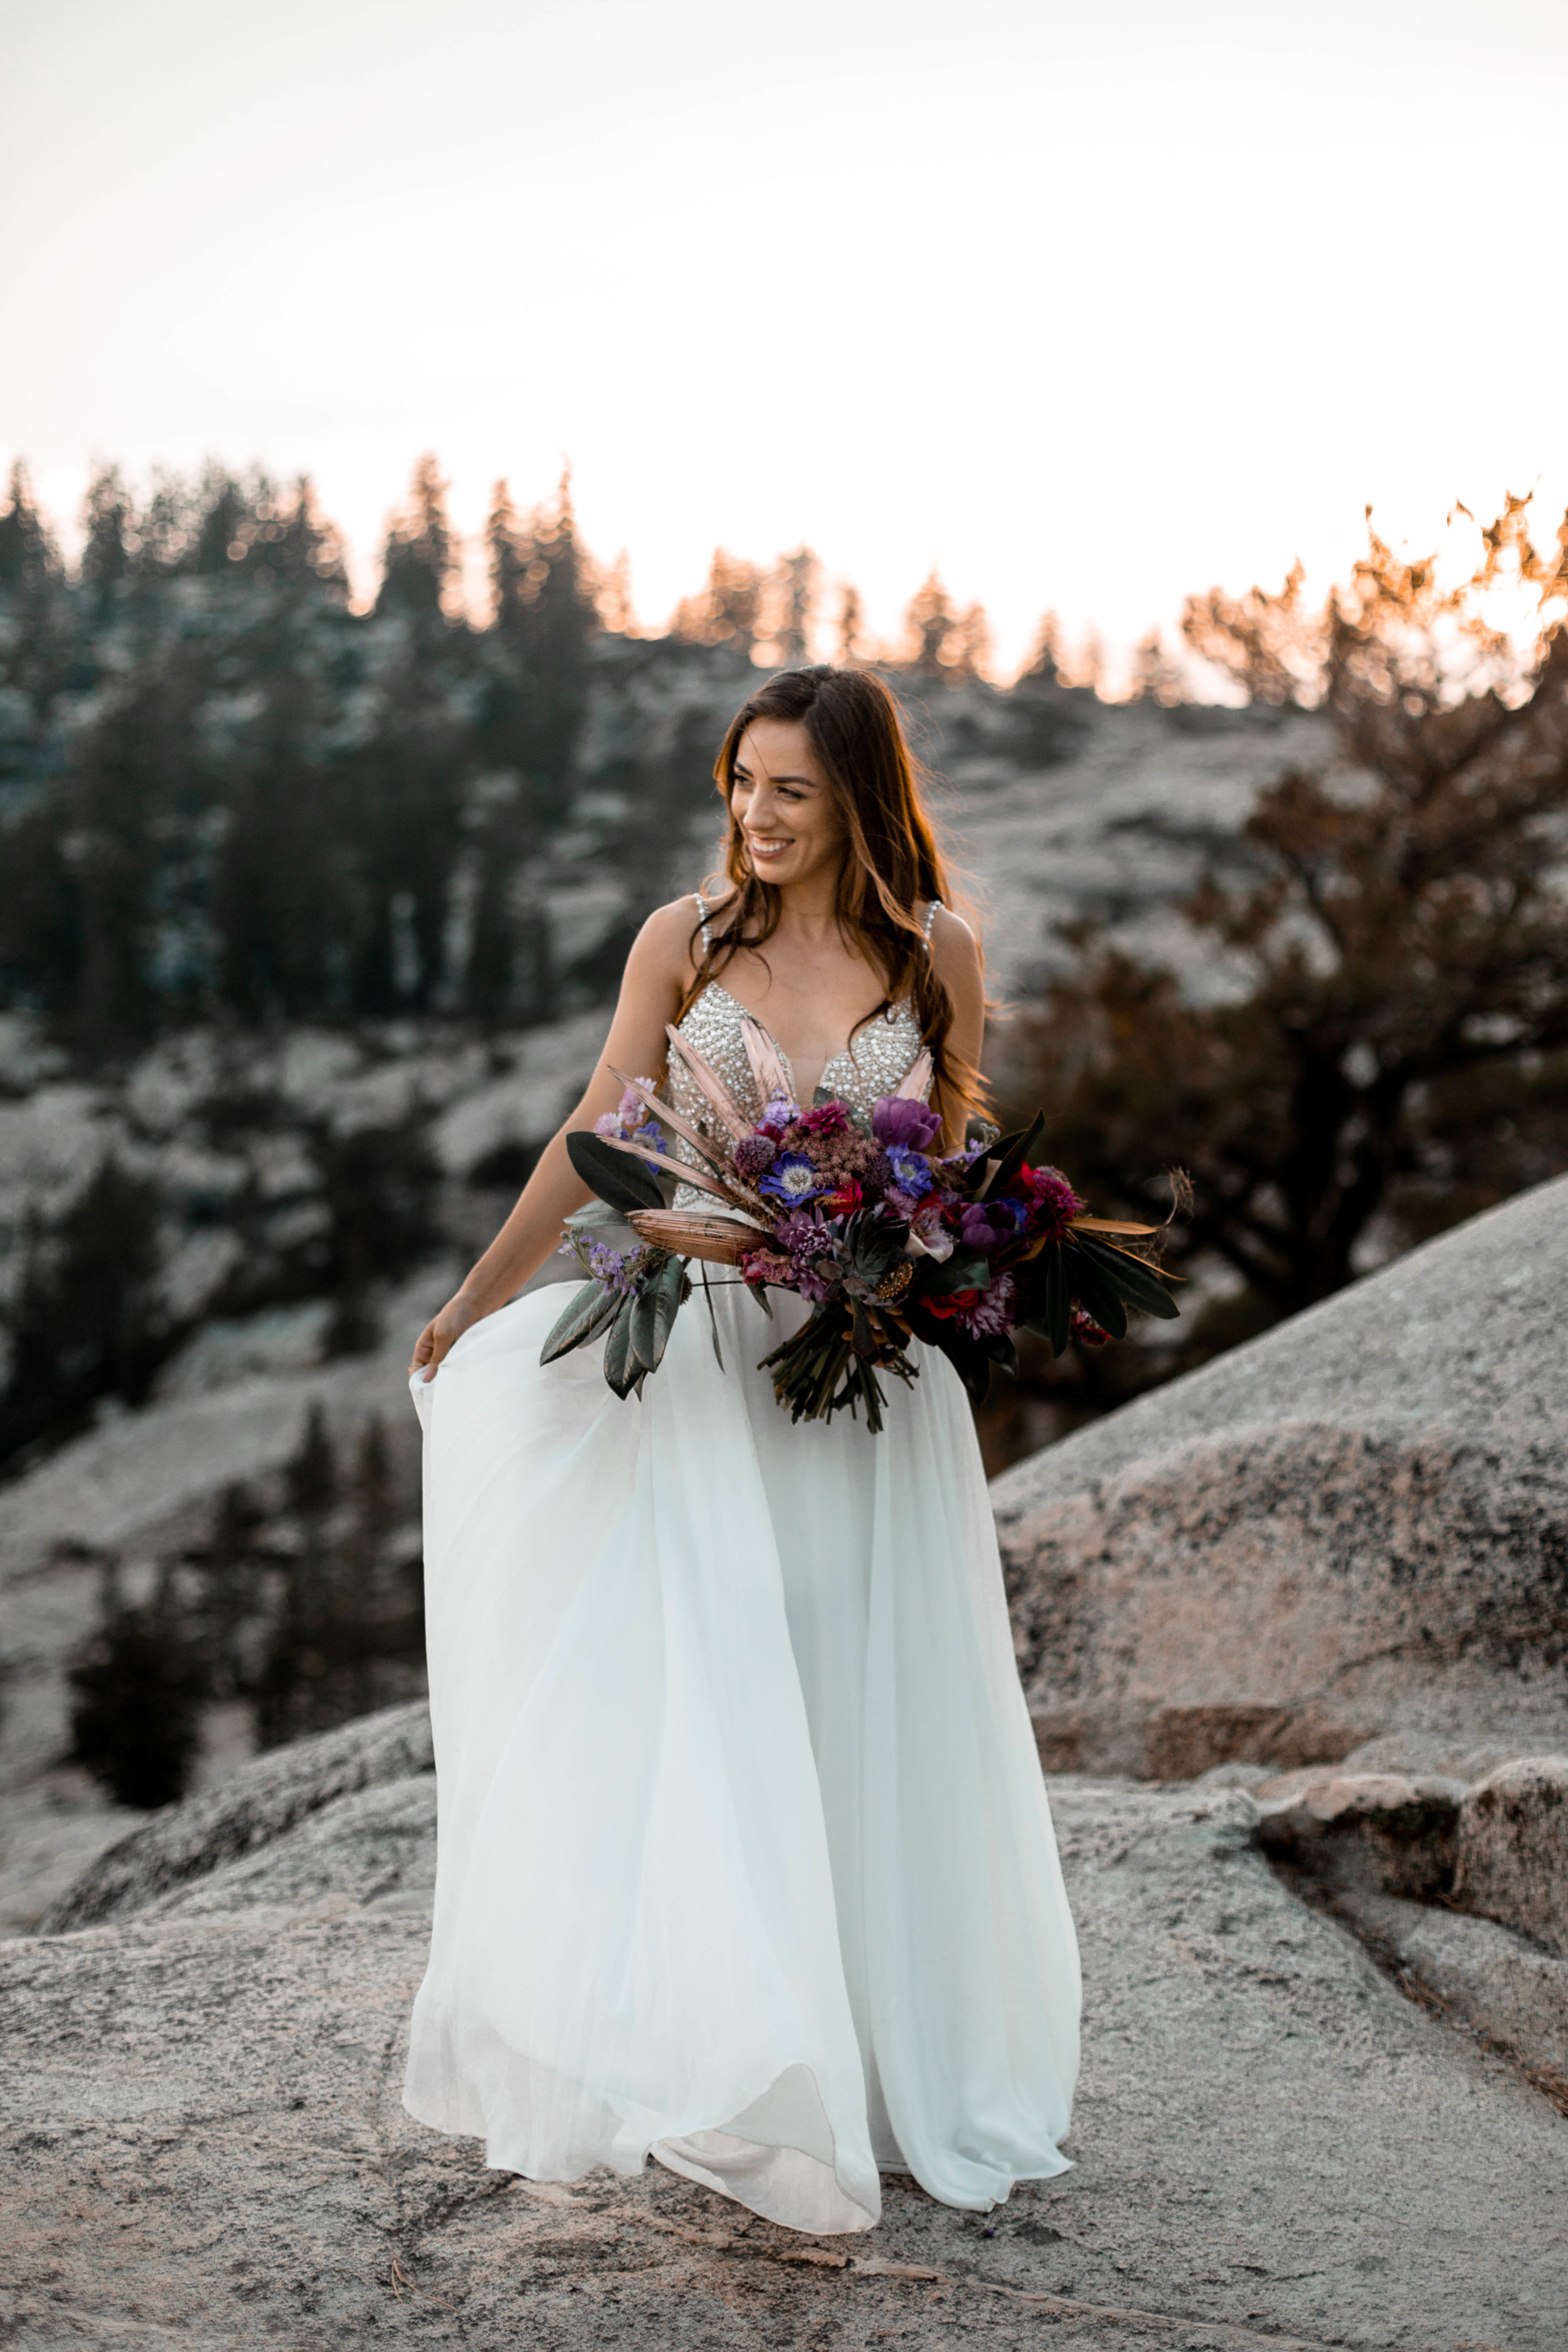 nicole-daacke-photography-yosemite-national-park-wedding-sunset-elopement-olmstead-point-yosemite-adventure-wedding-photographer-adventurous-elopement-destination-wedding-national-park-wedding-photography-1350.jpg